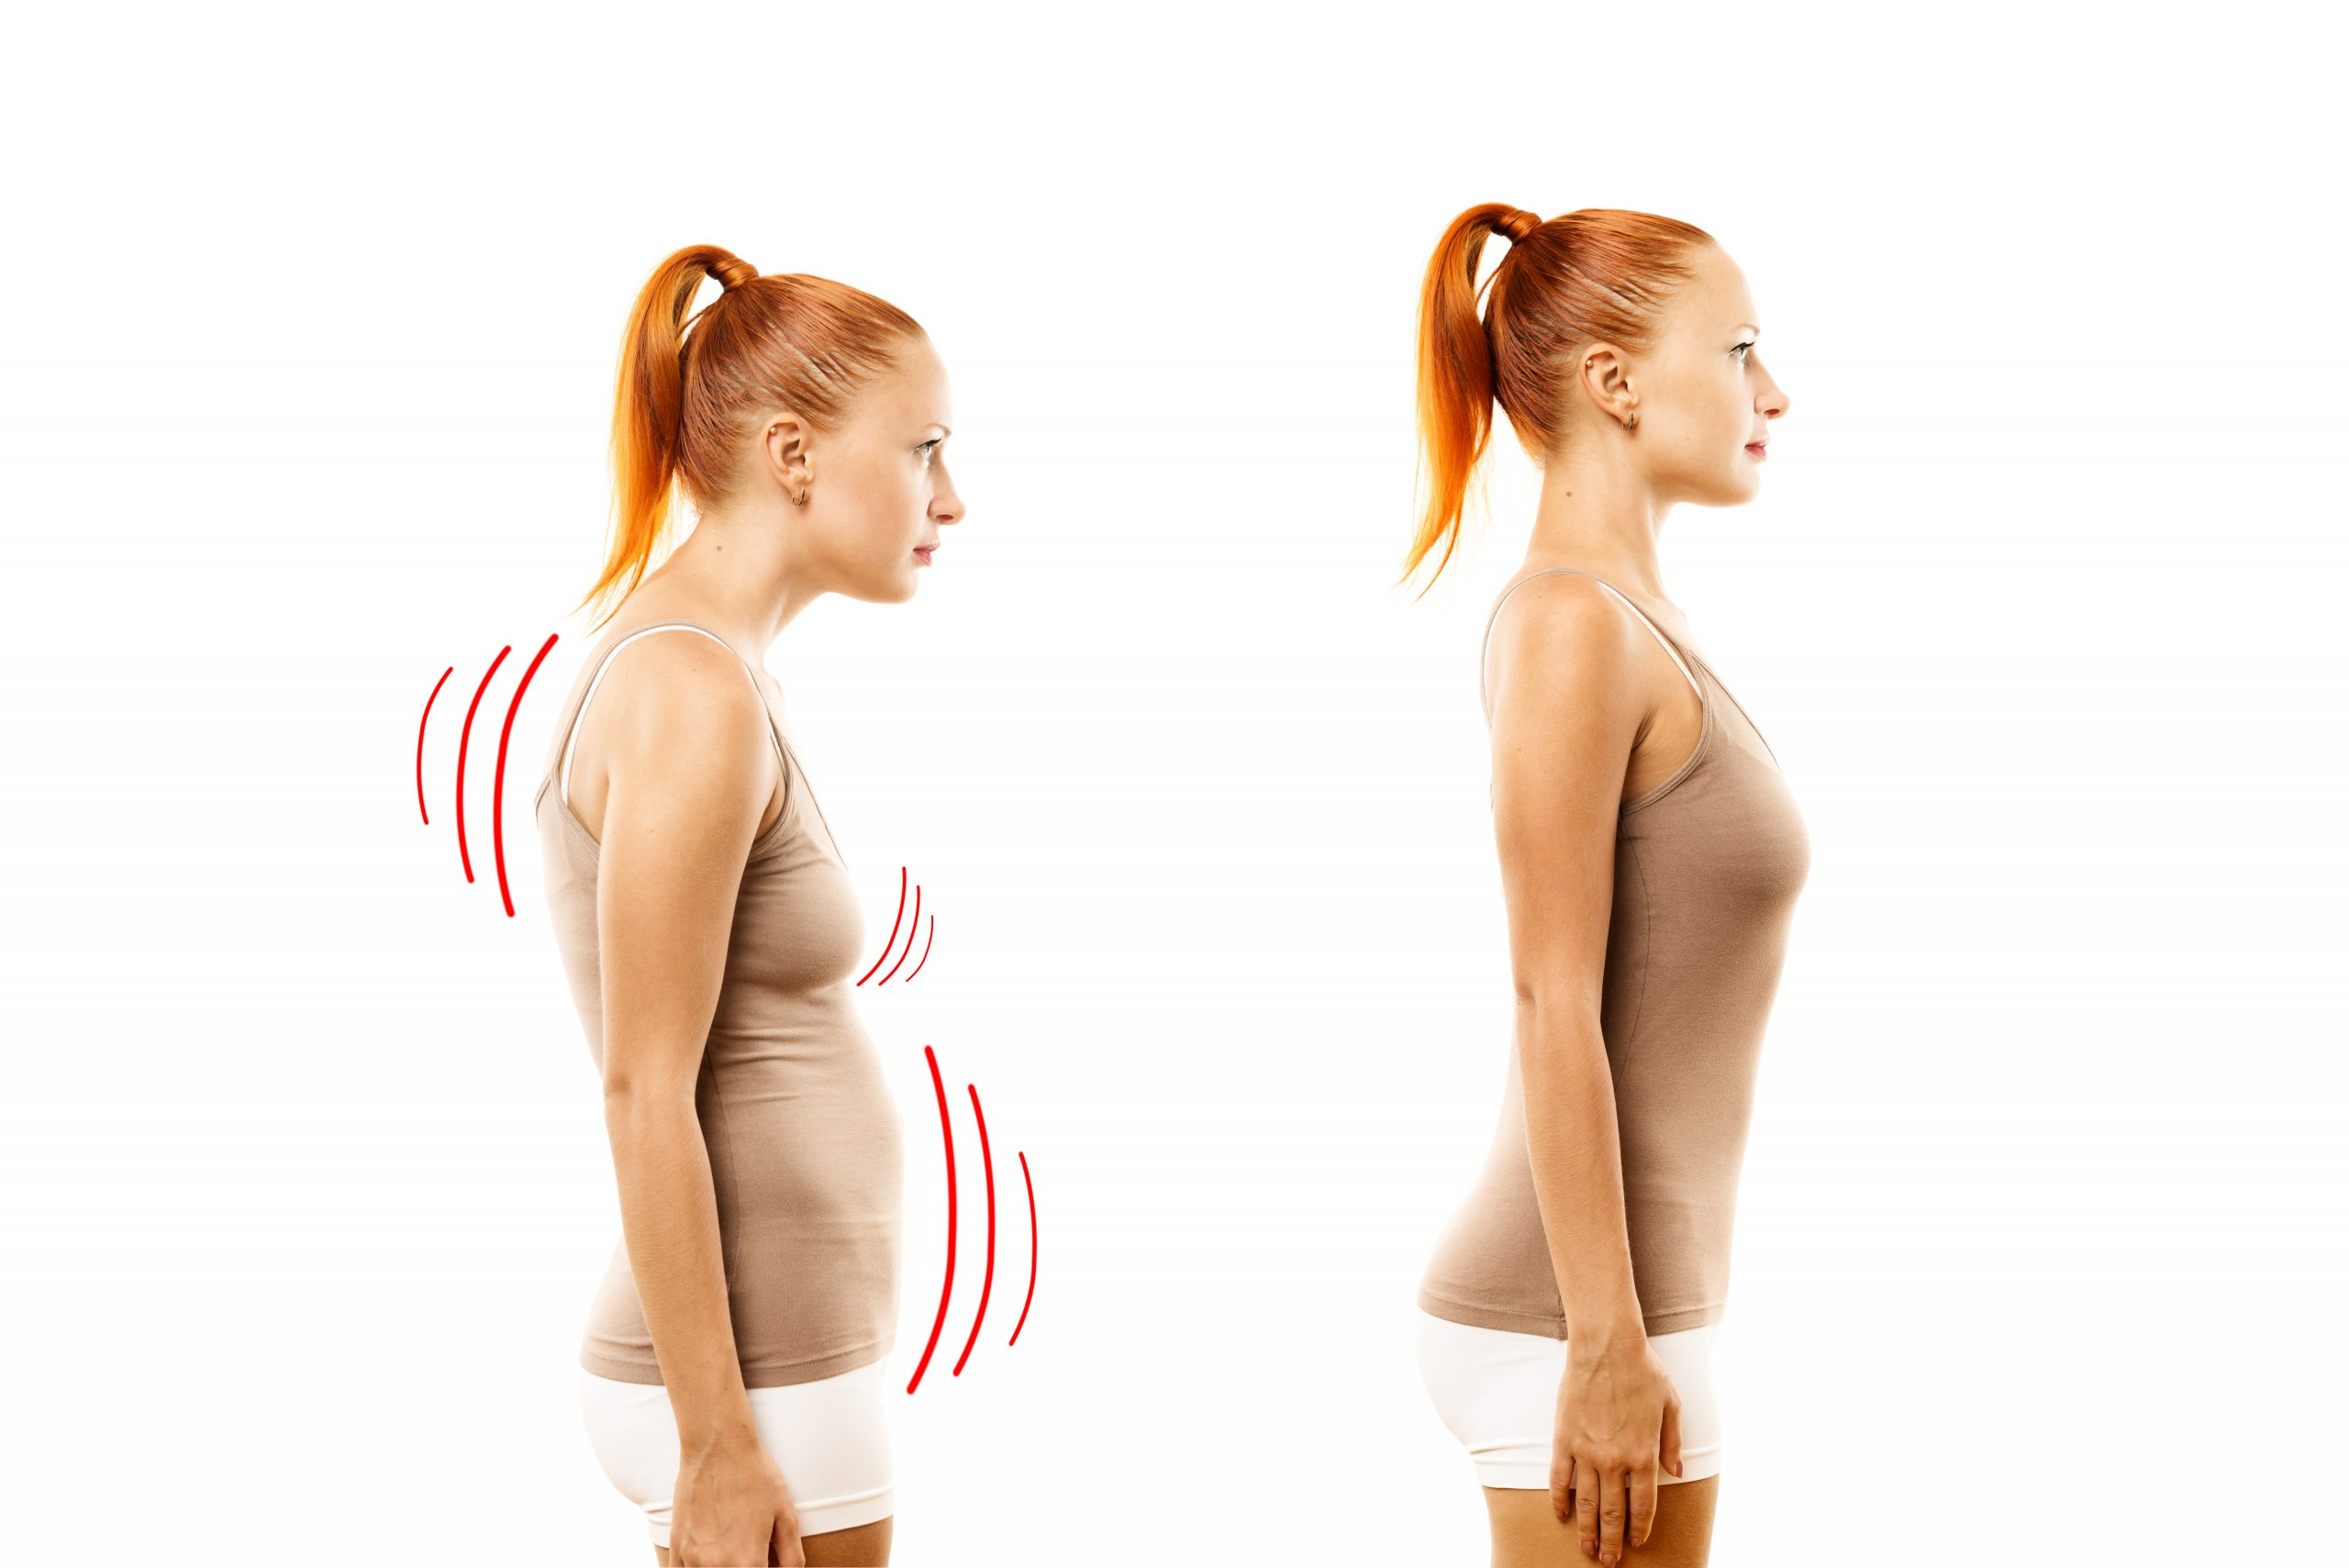 correct posture san diego intouch chiropractic nucca upper cervical care spinal decompression